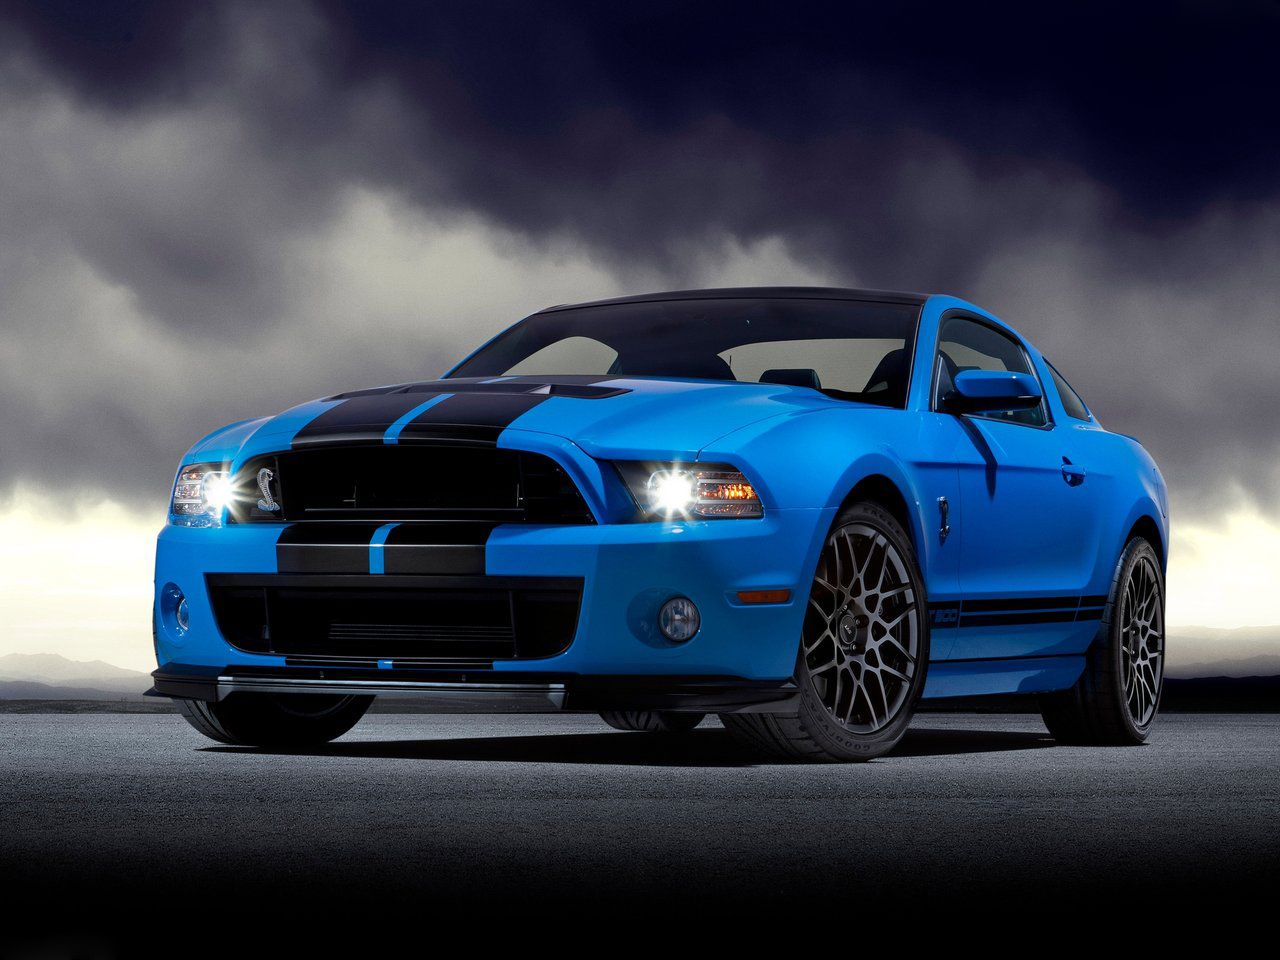 2013 Mustang Shelby GT500.